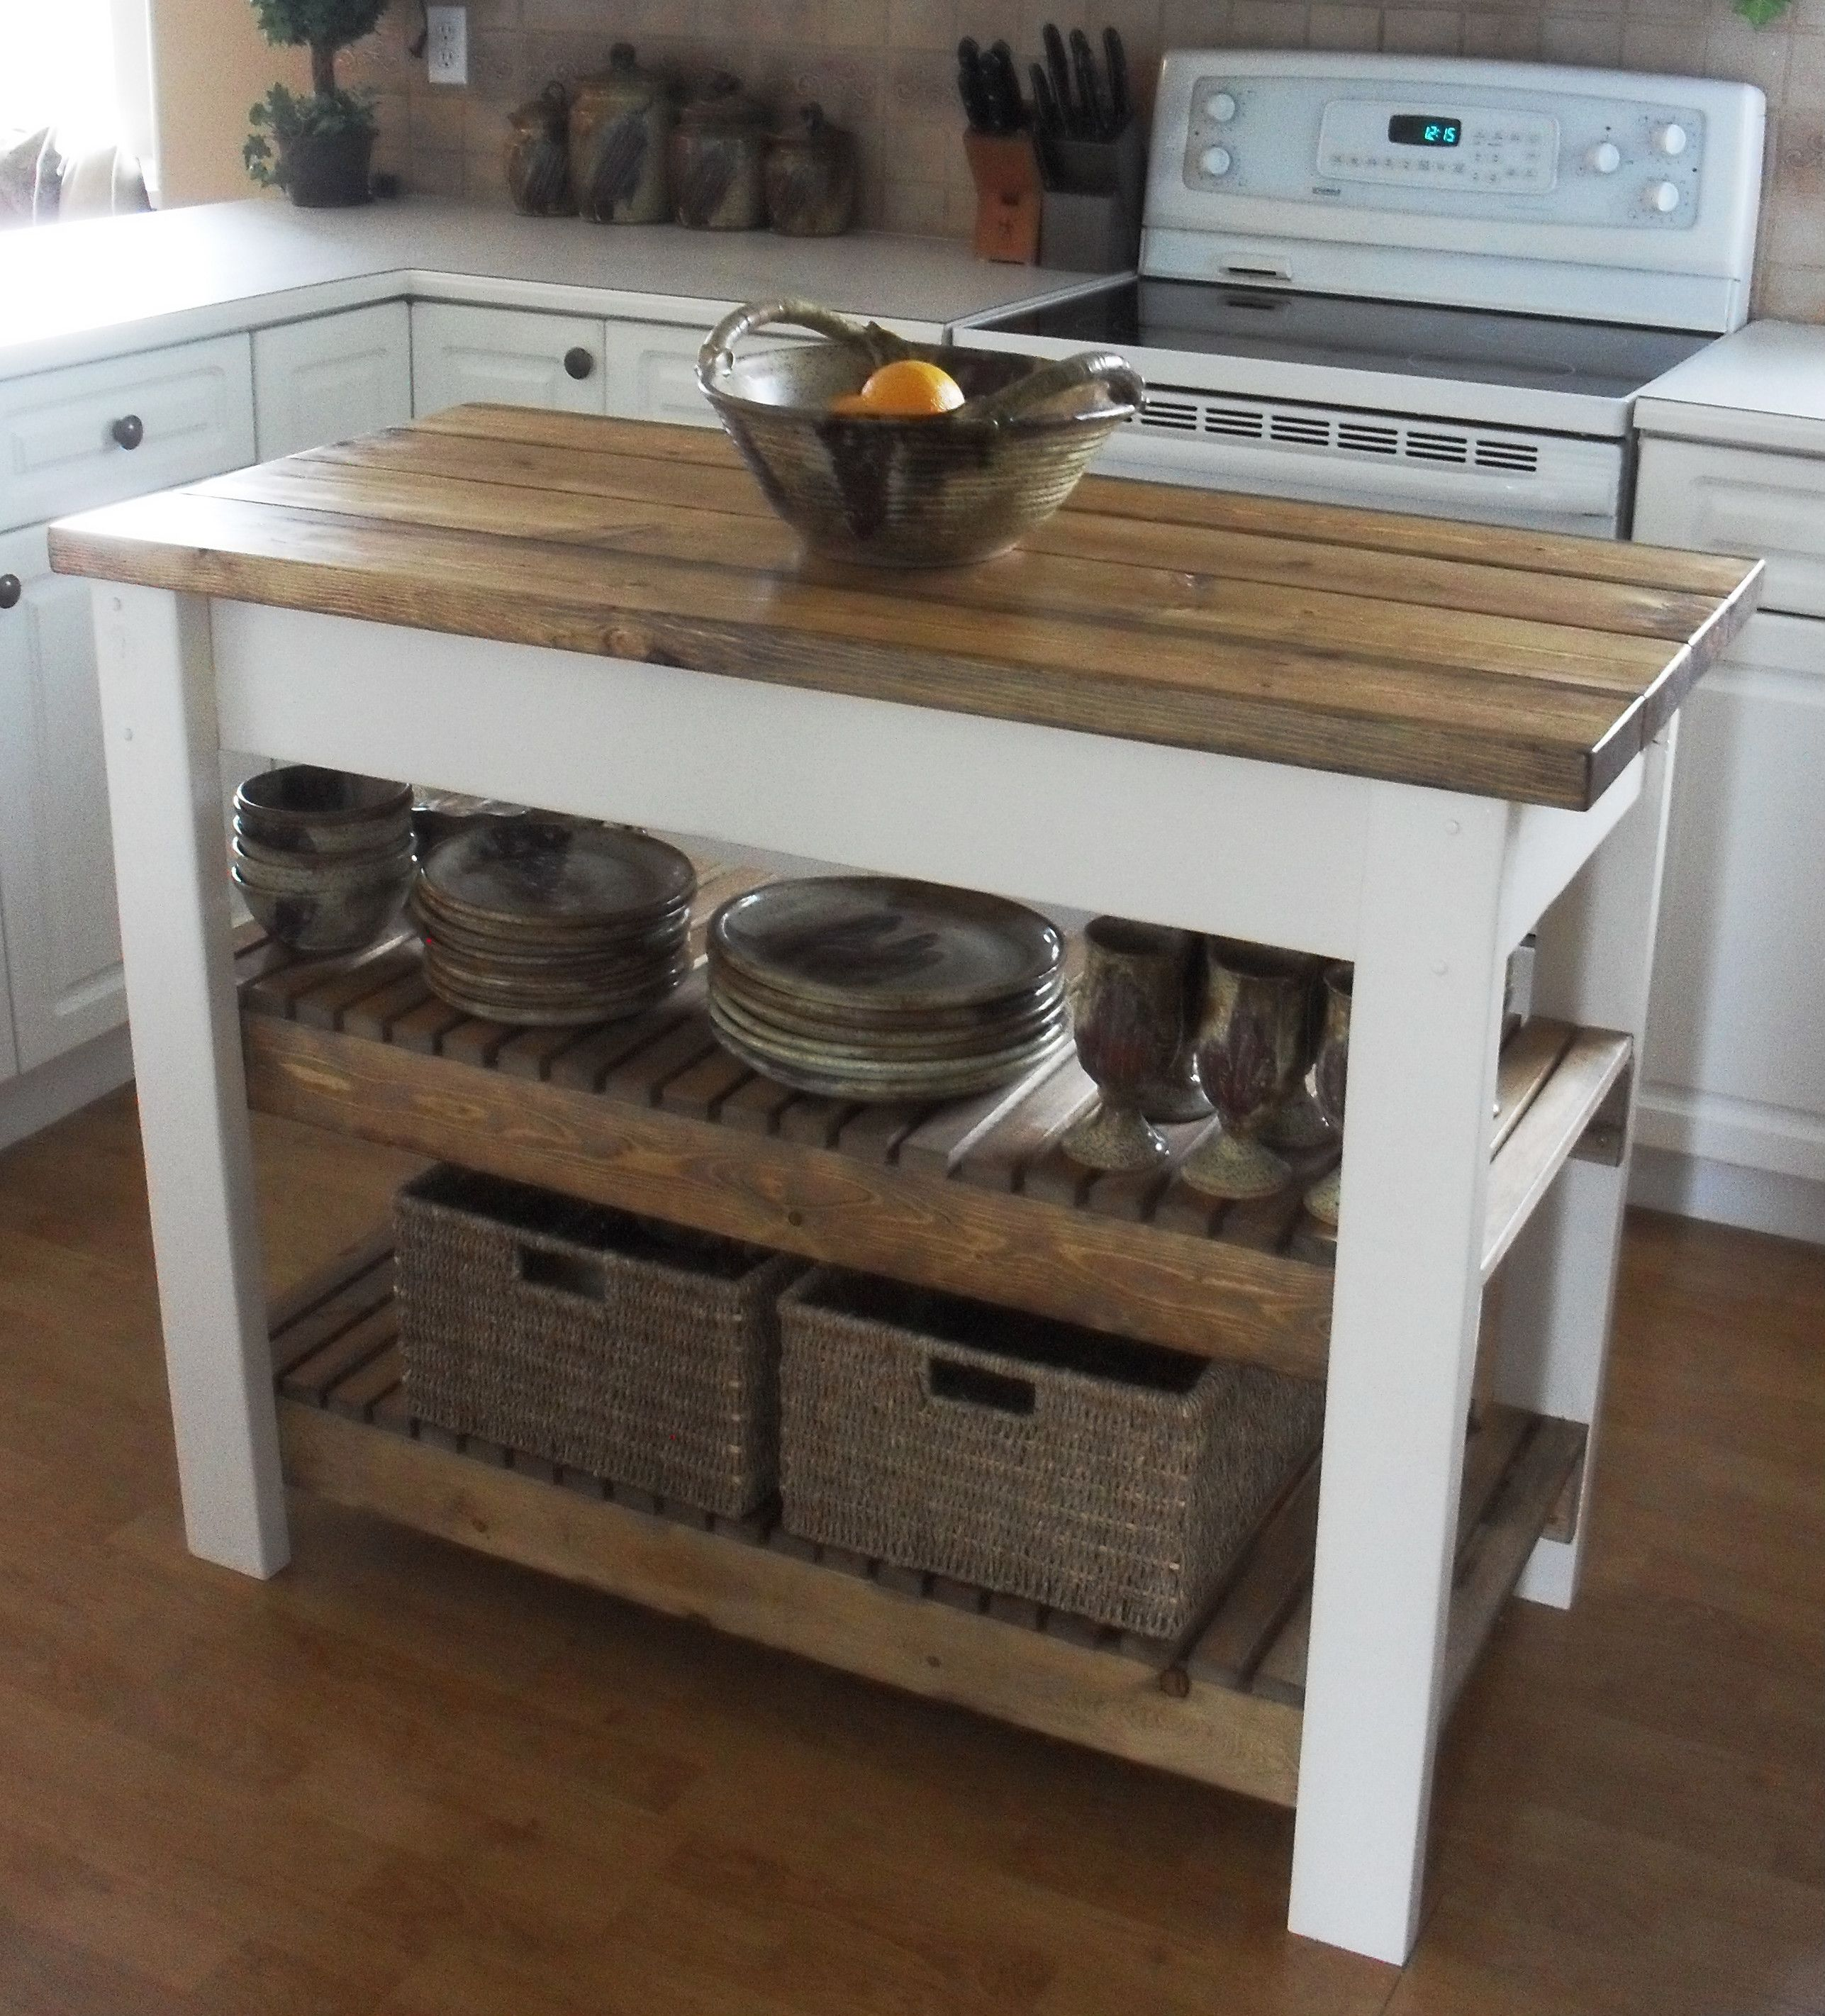 Diy Kitchen Island 47 In Materials Although I D Probably Extend It Out A Few Inches To Add Seating Kitchen Island Plans Home Kitchens Diy Kitchen Island